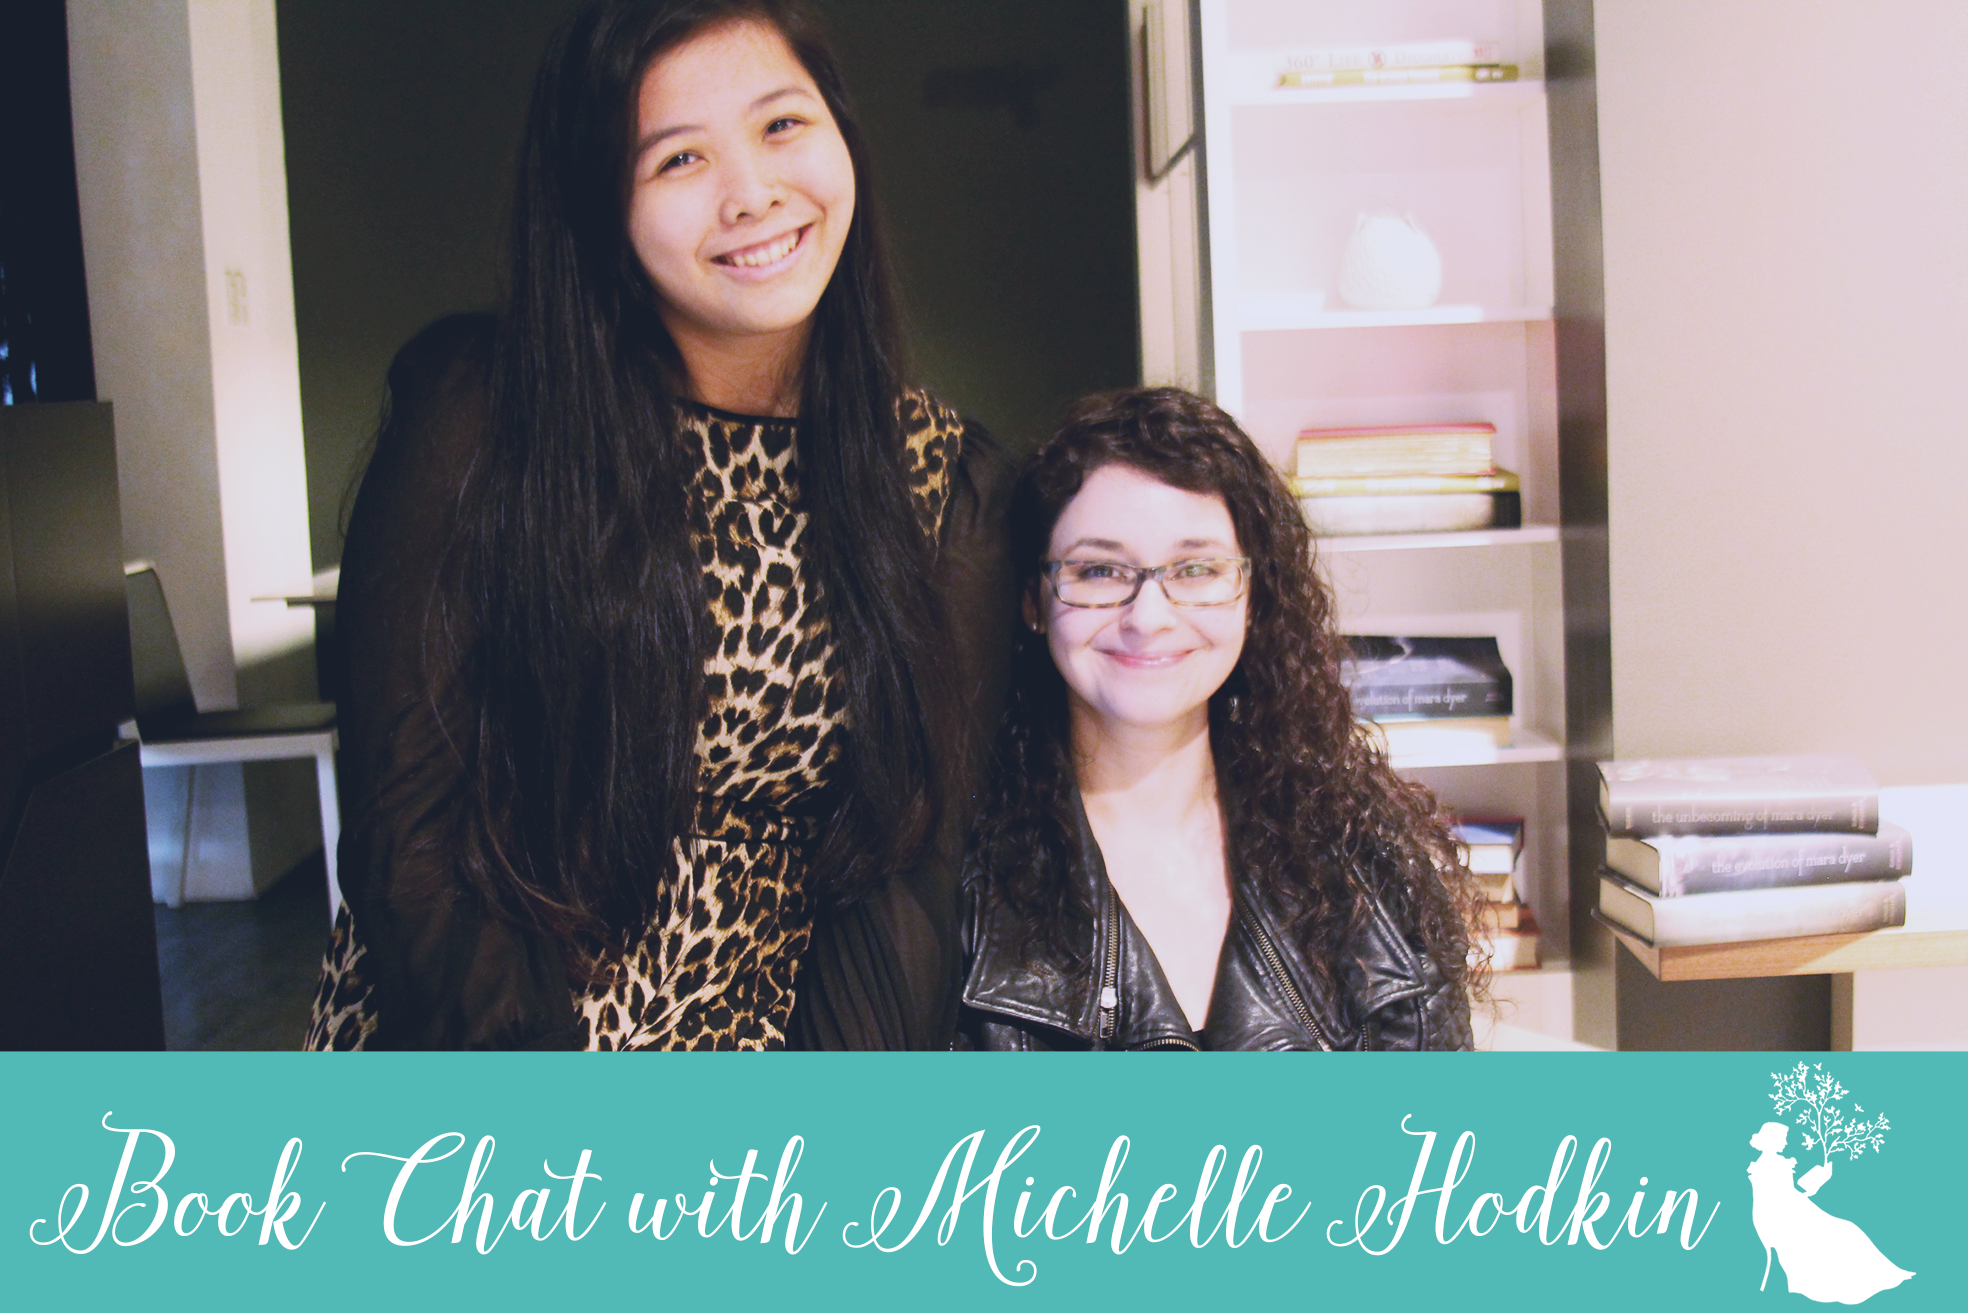 book chat with Michelle Hodkin